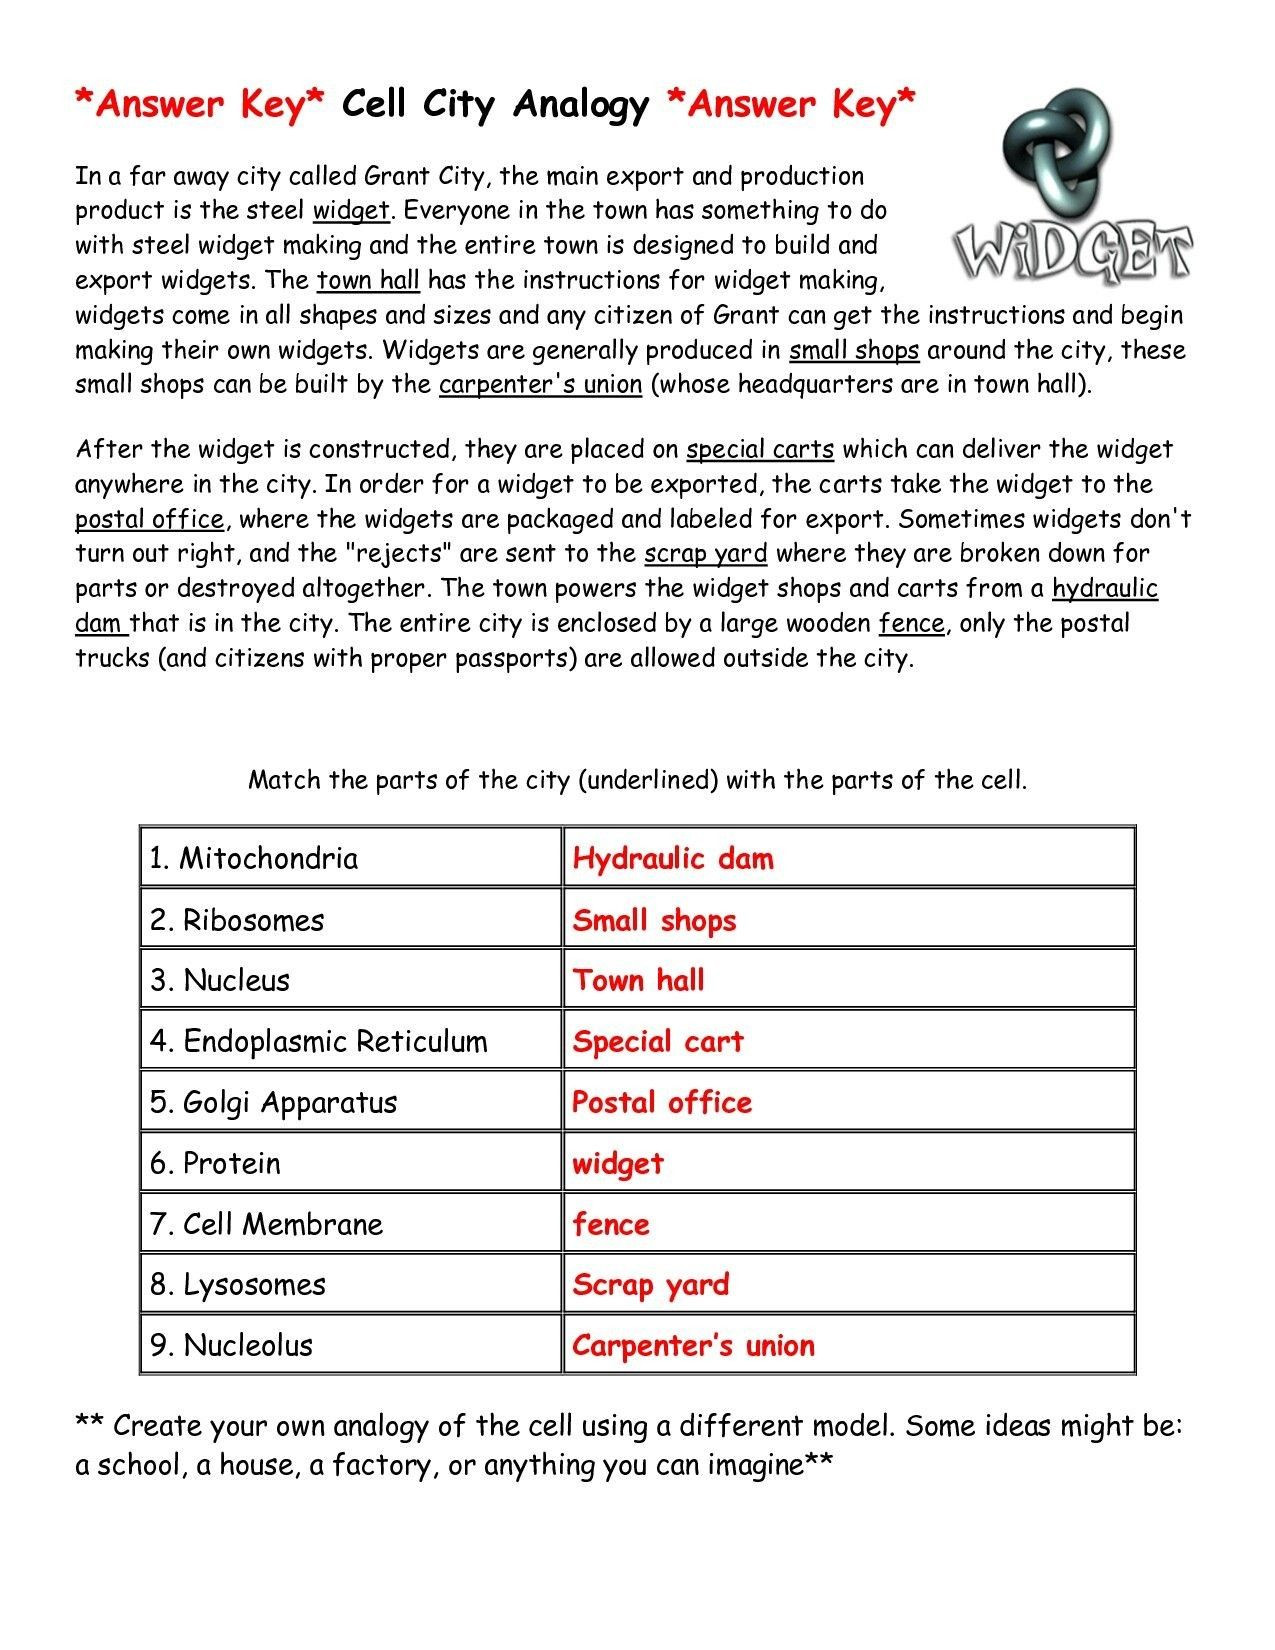 Cell Membrane Images Worksheet Answers Cell Membrane Worksheet